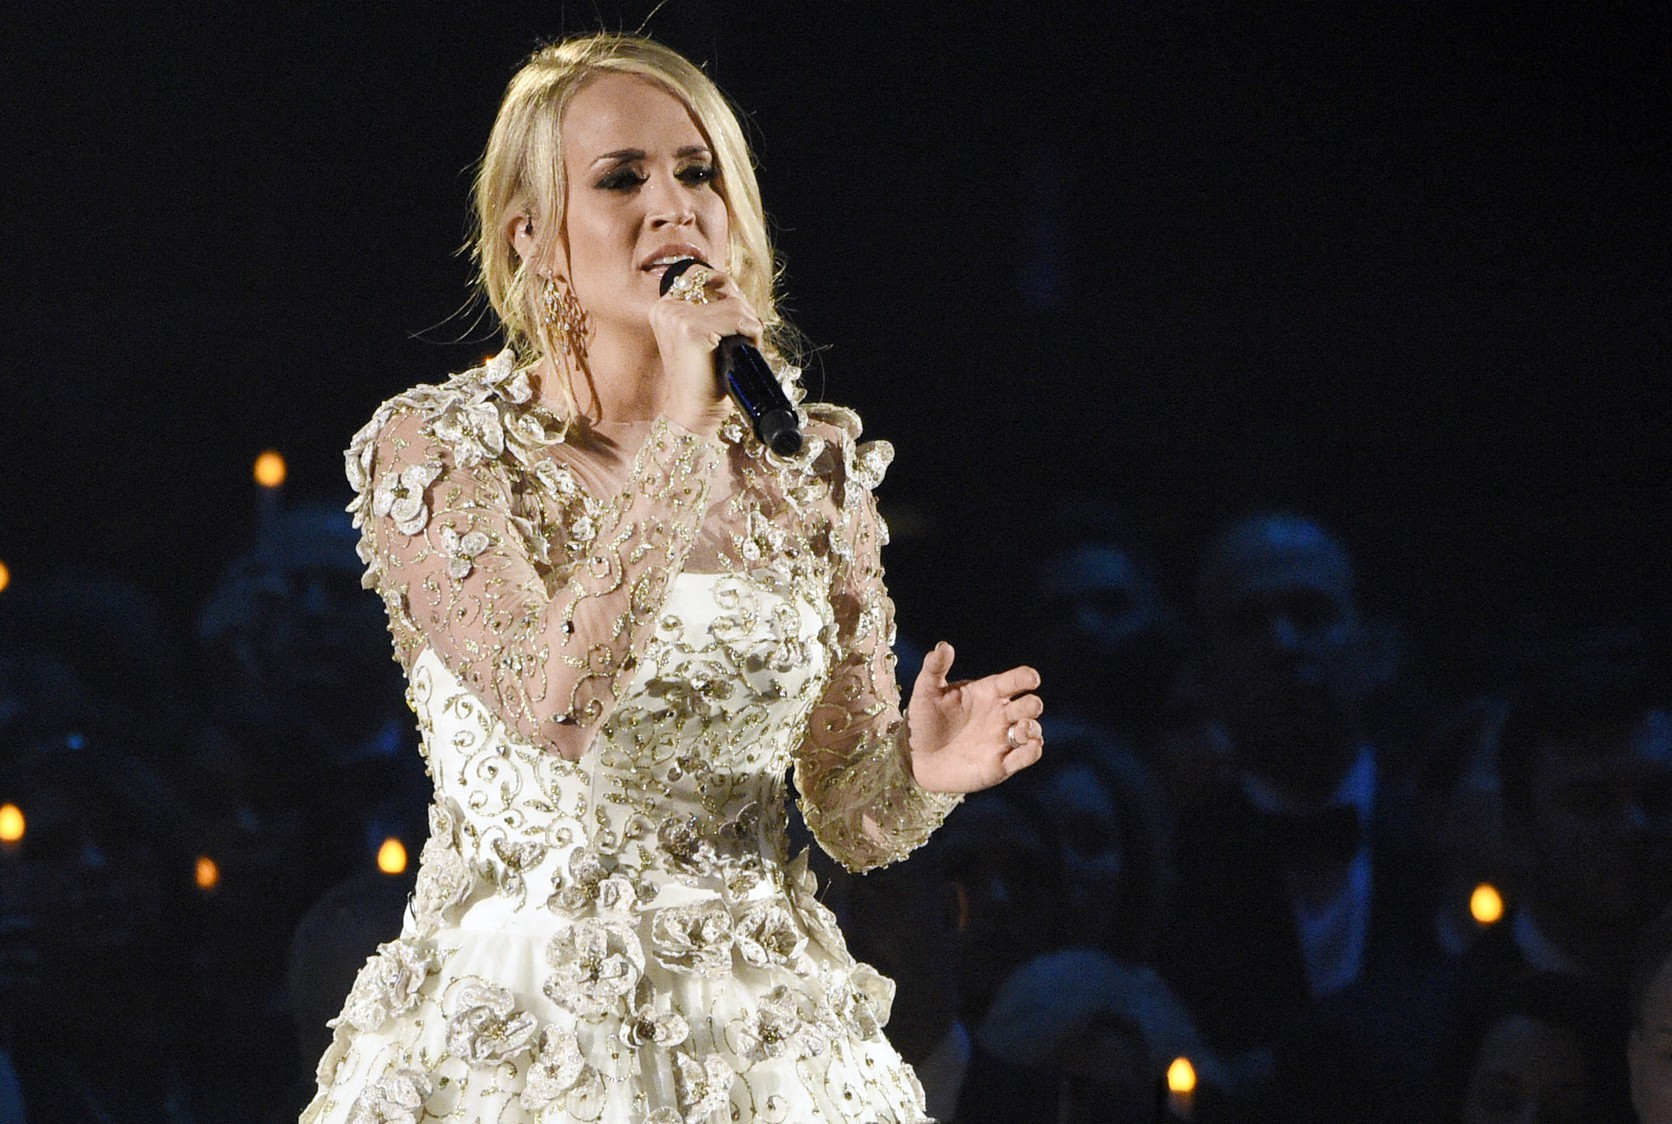 Carrie Underwood at the 51st CMA Awards